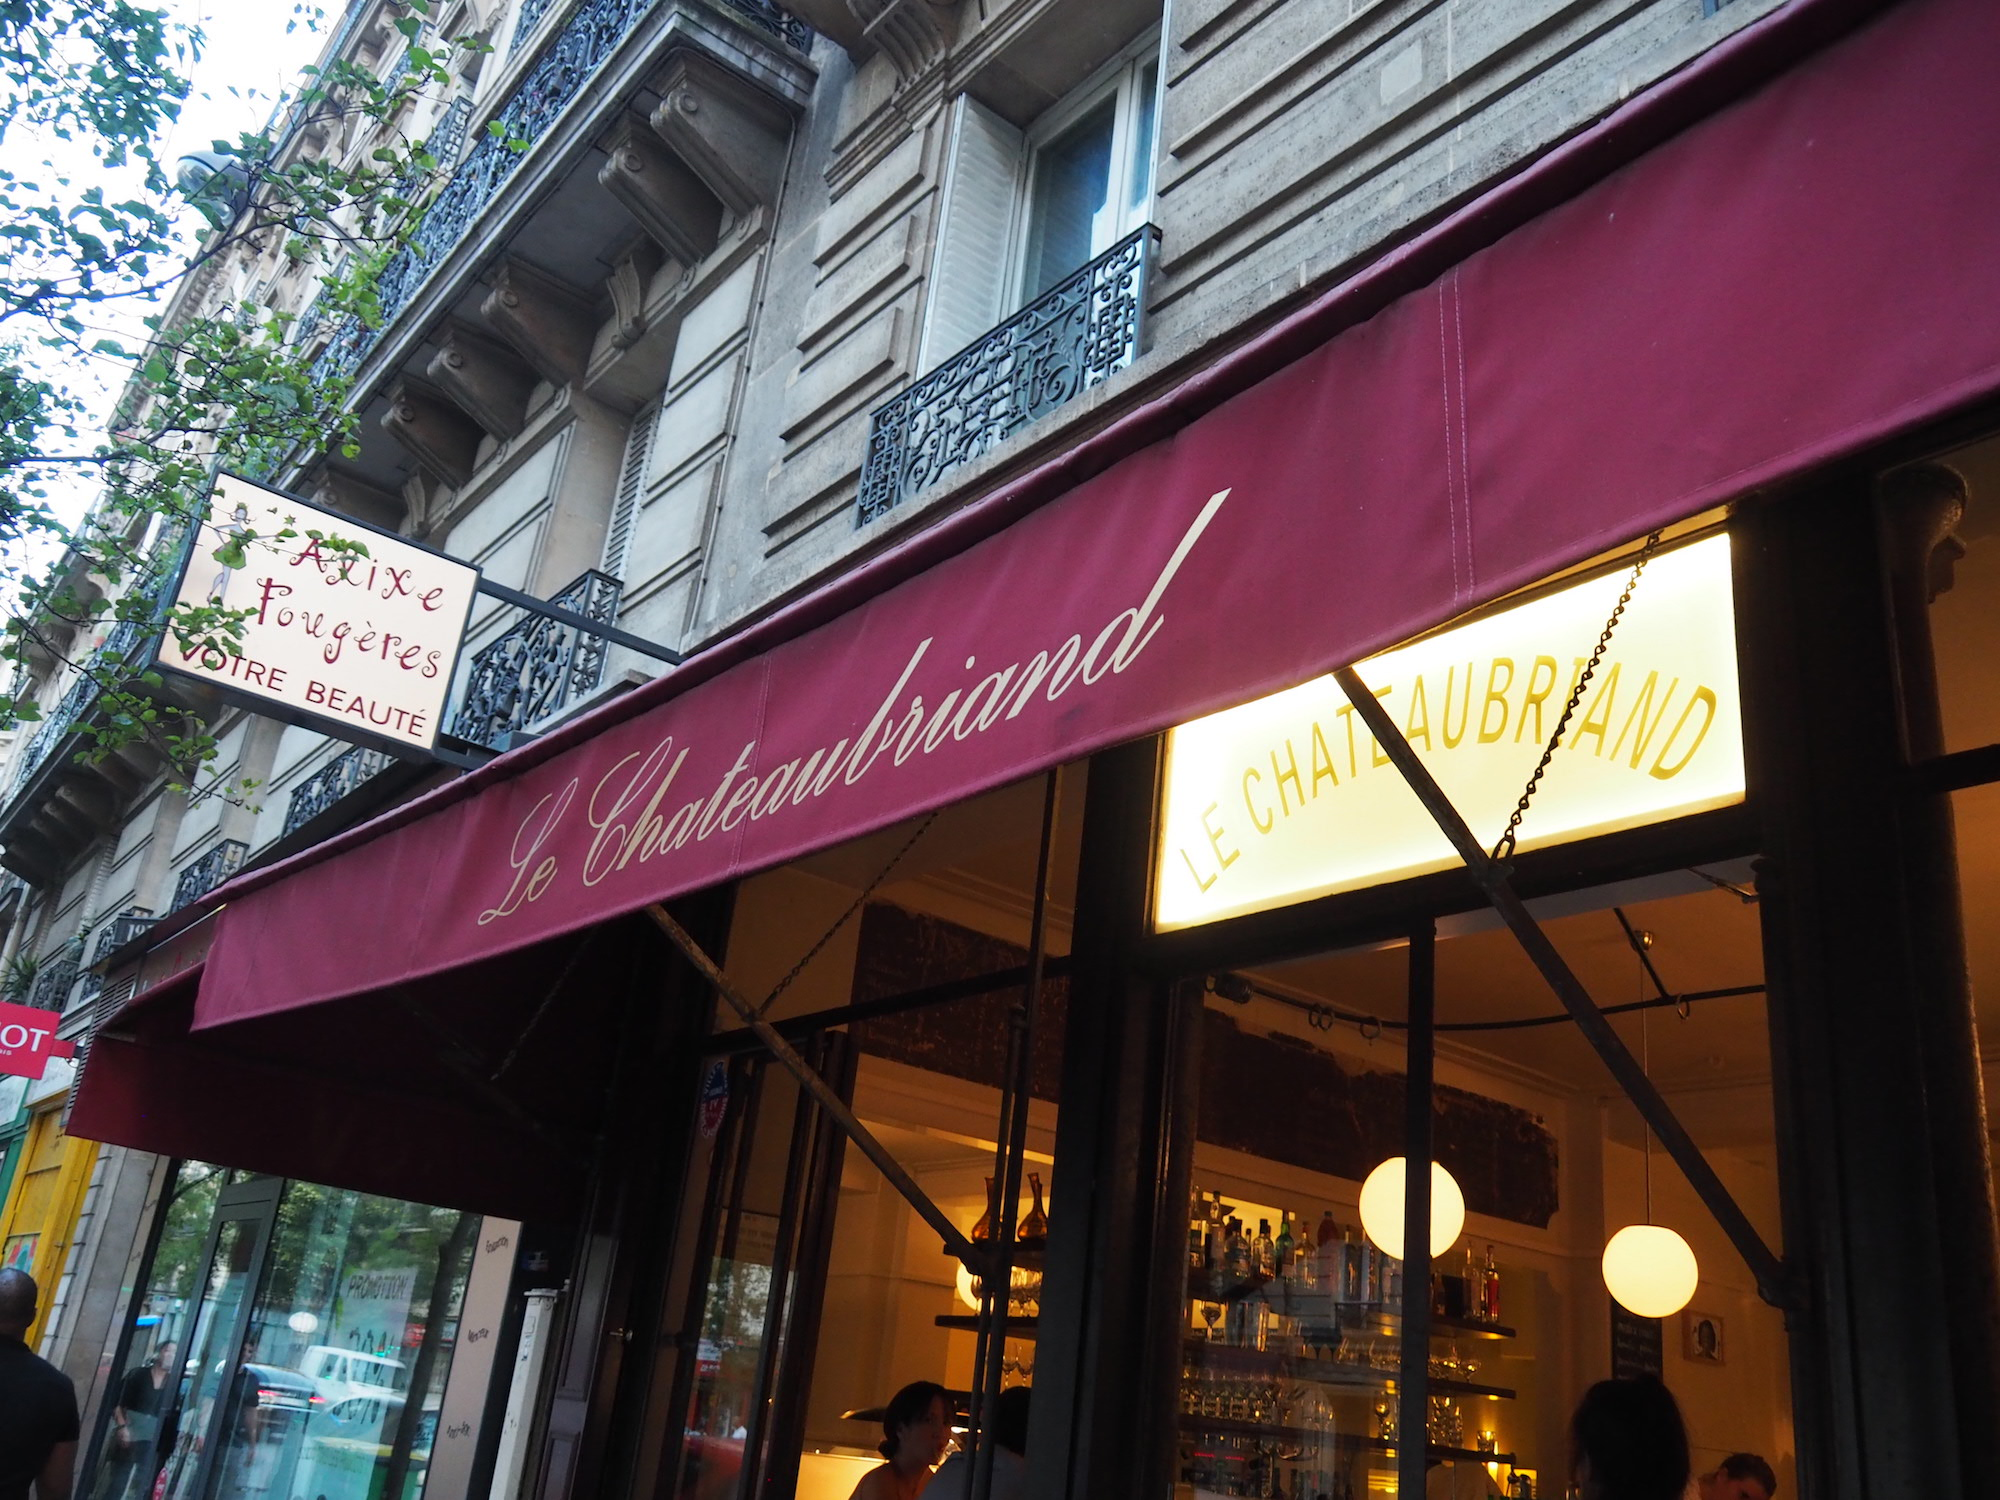 Le Chateaubriand Paris